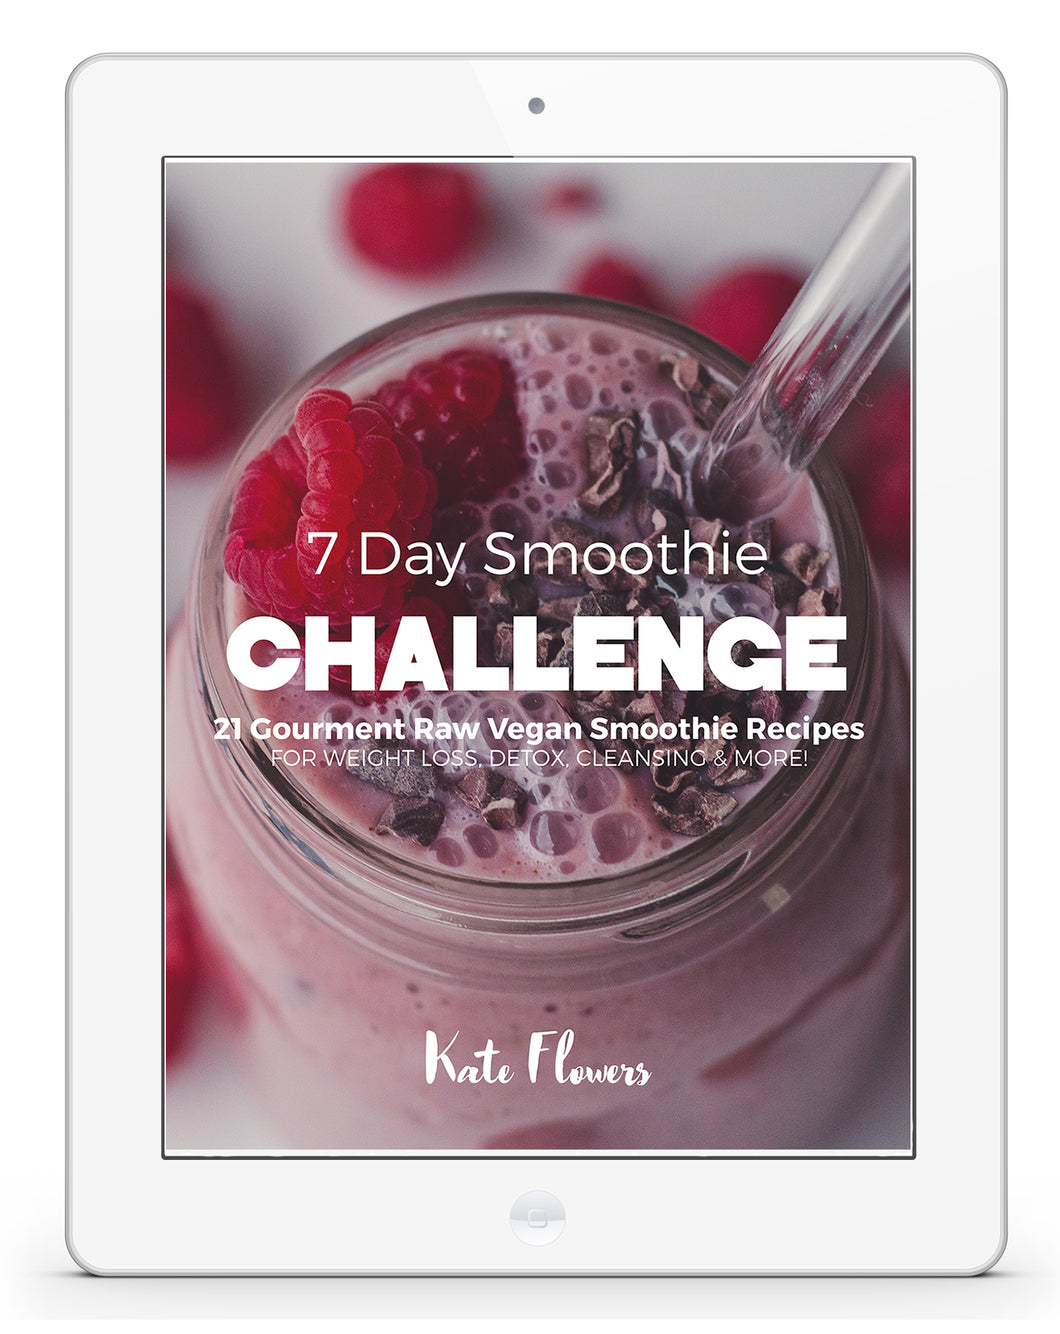 Seven Day Smoothie Challenge